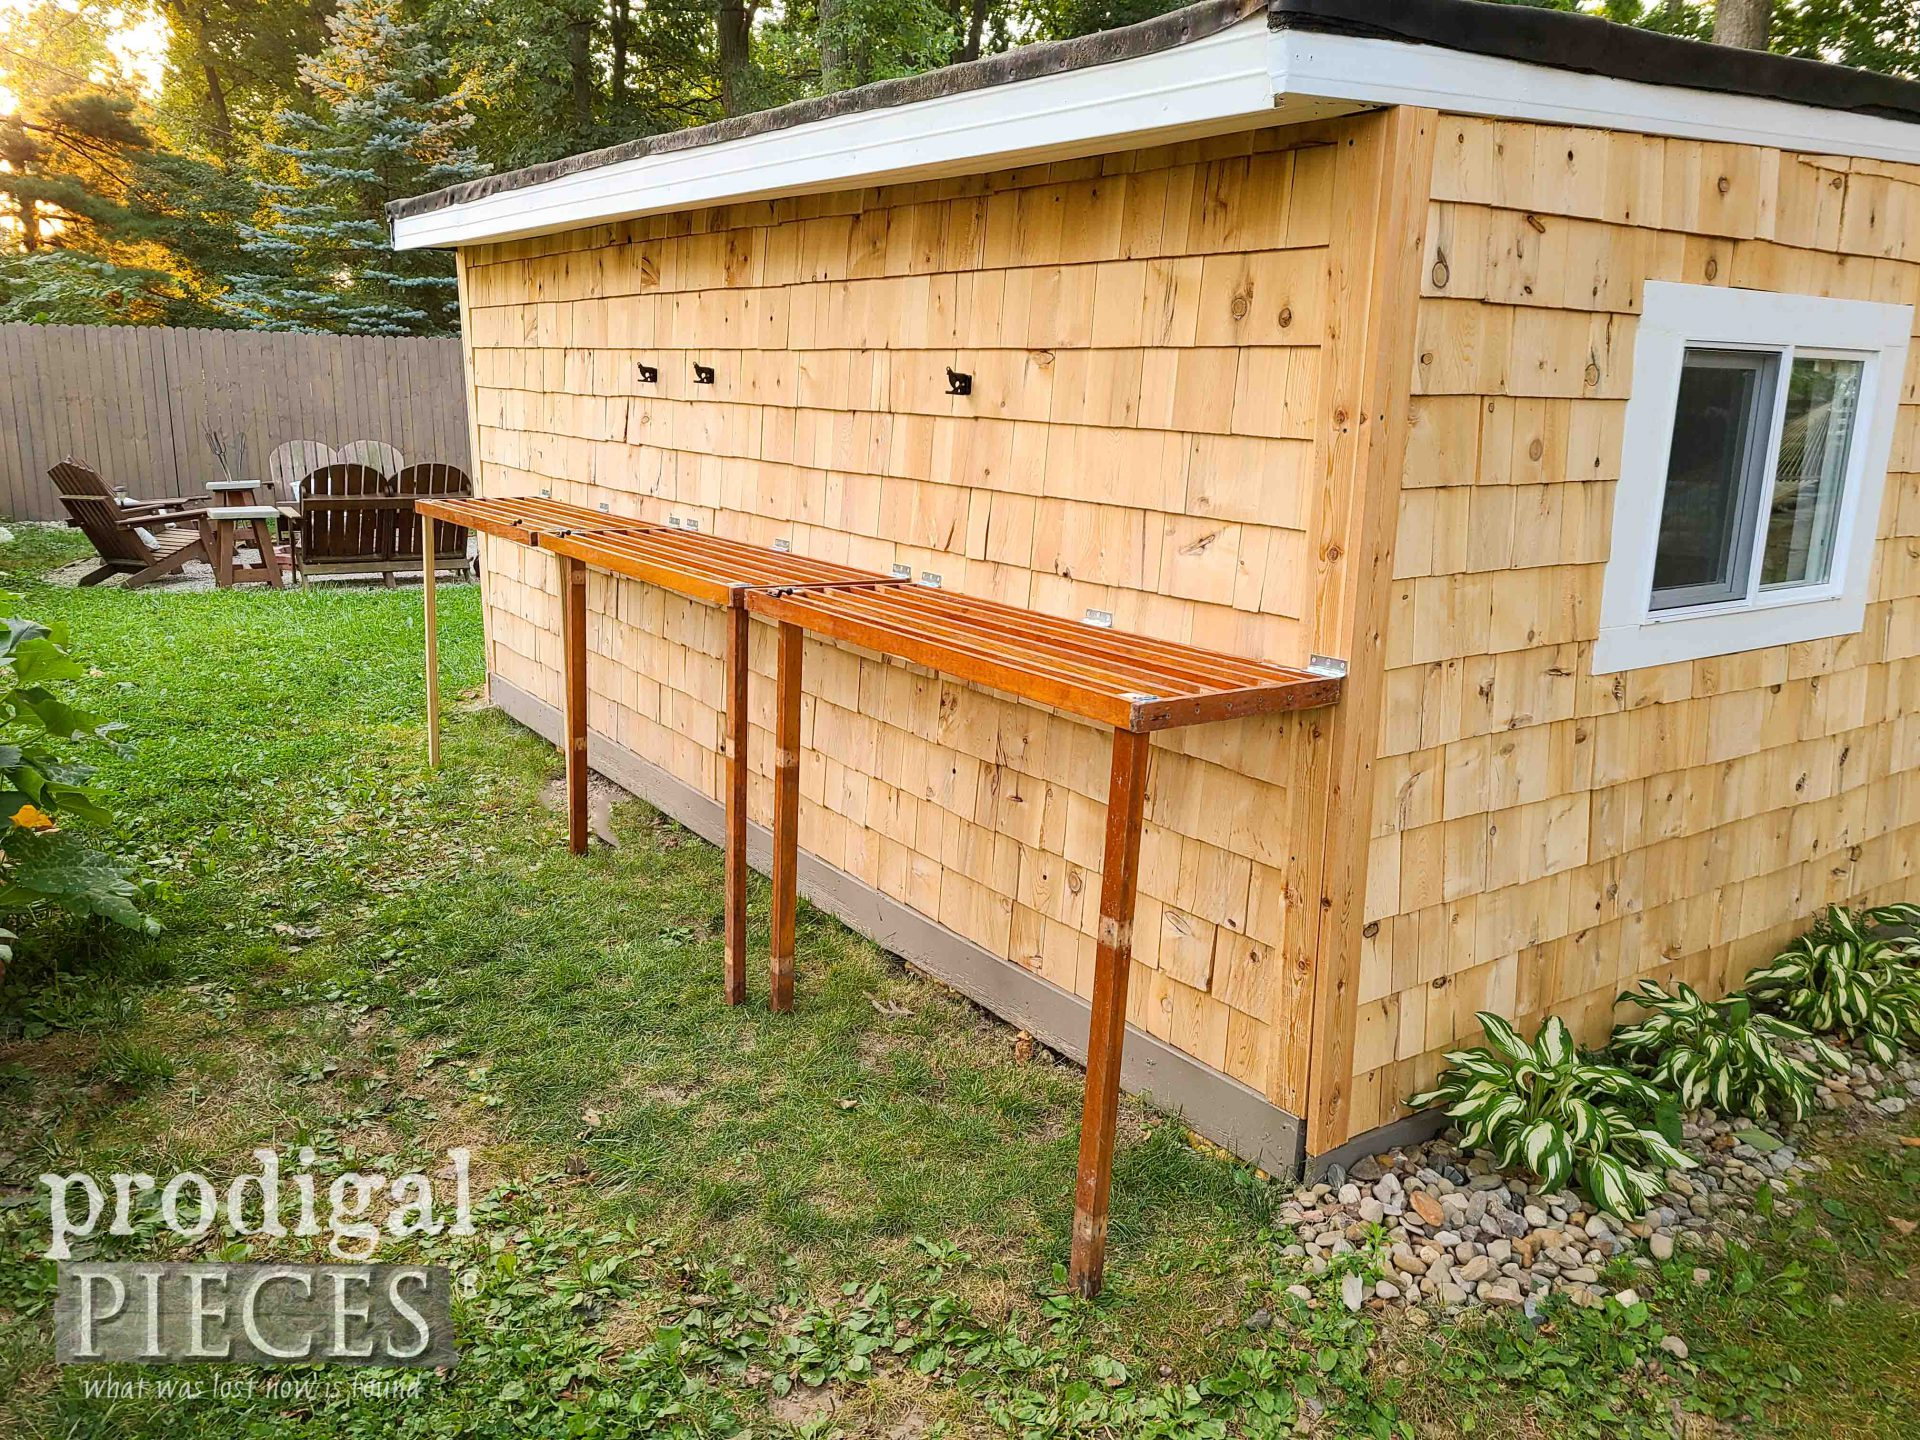 DIY Folding Potting Benches on Shed by Prodigal Pieces | prodigalpieces.com #prodigalpieces #diy #home #garden #homesteading